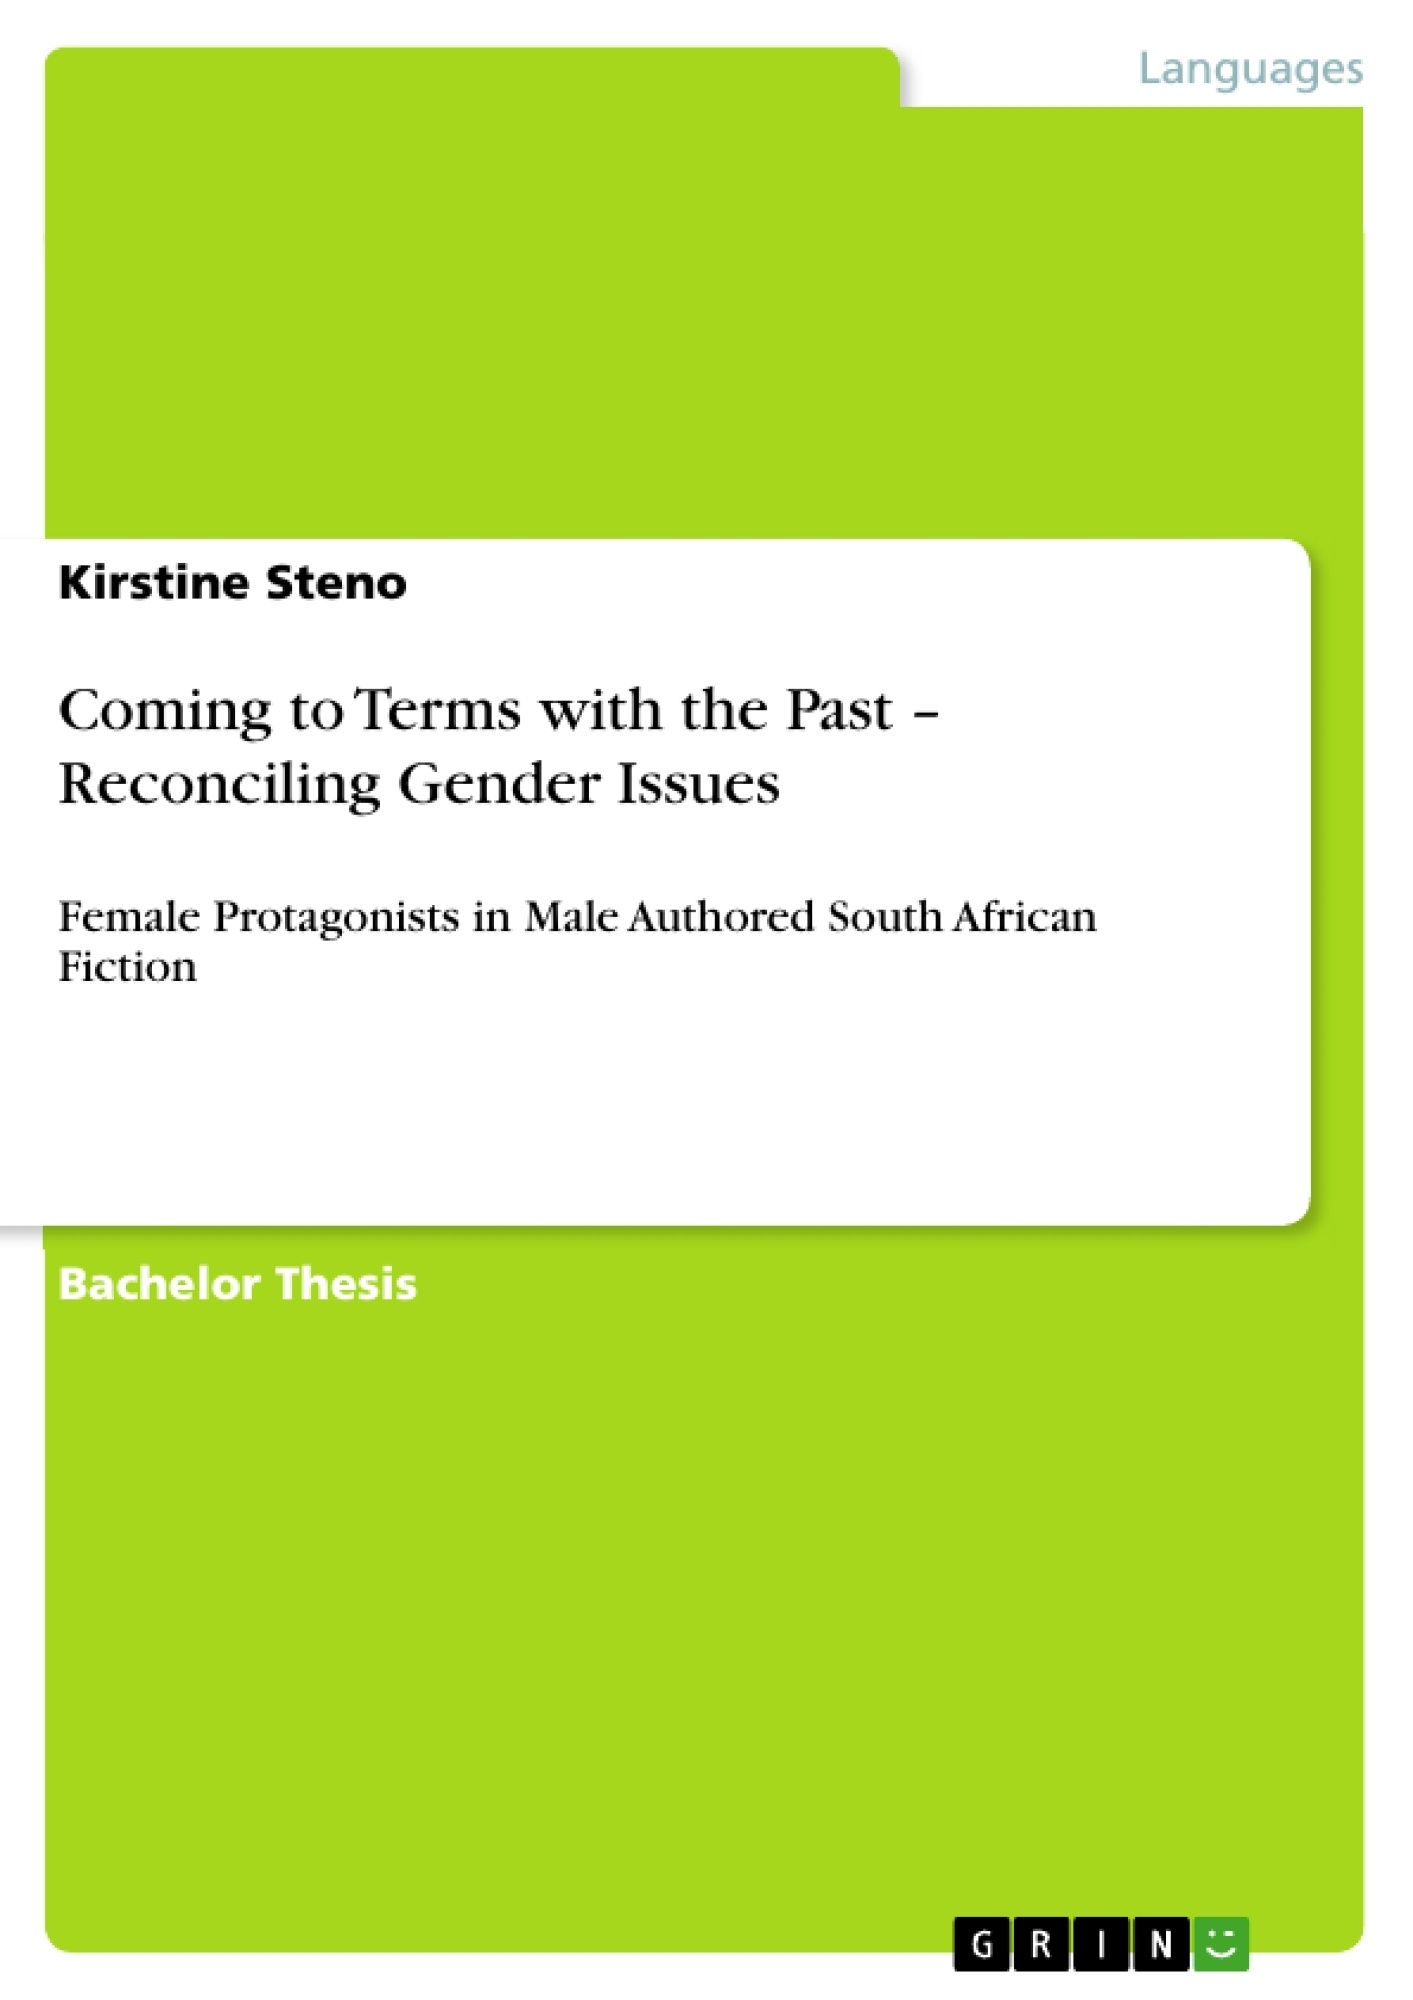 Title: Coming to Terms with the Past – Reconciling Gender Issues